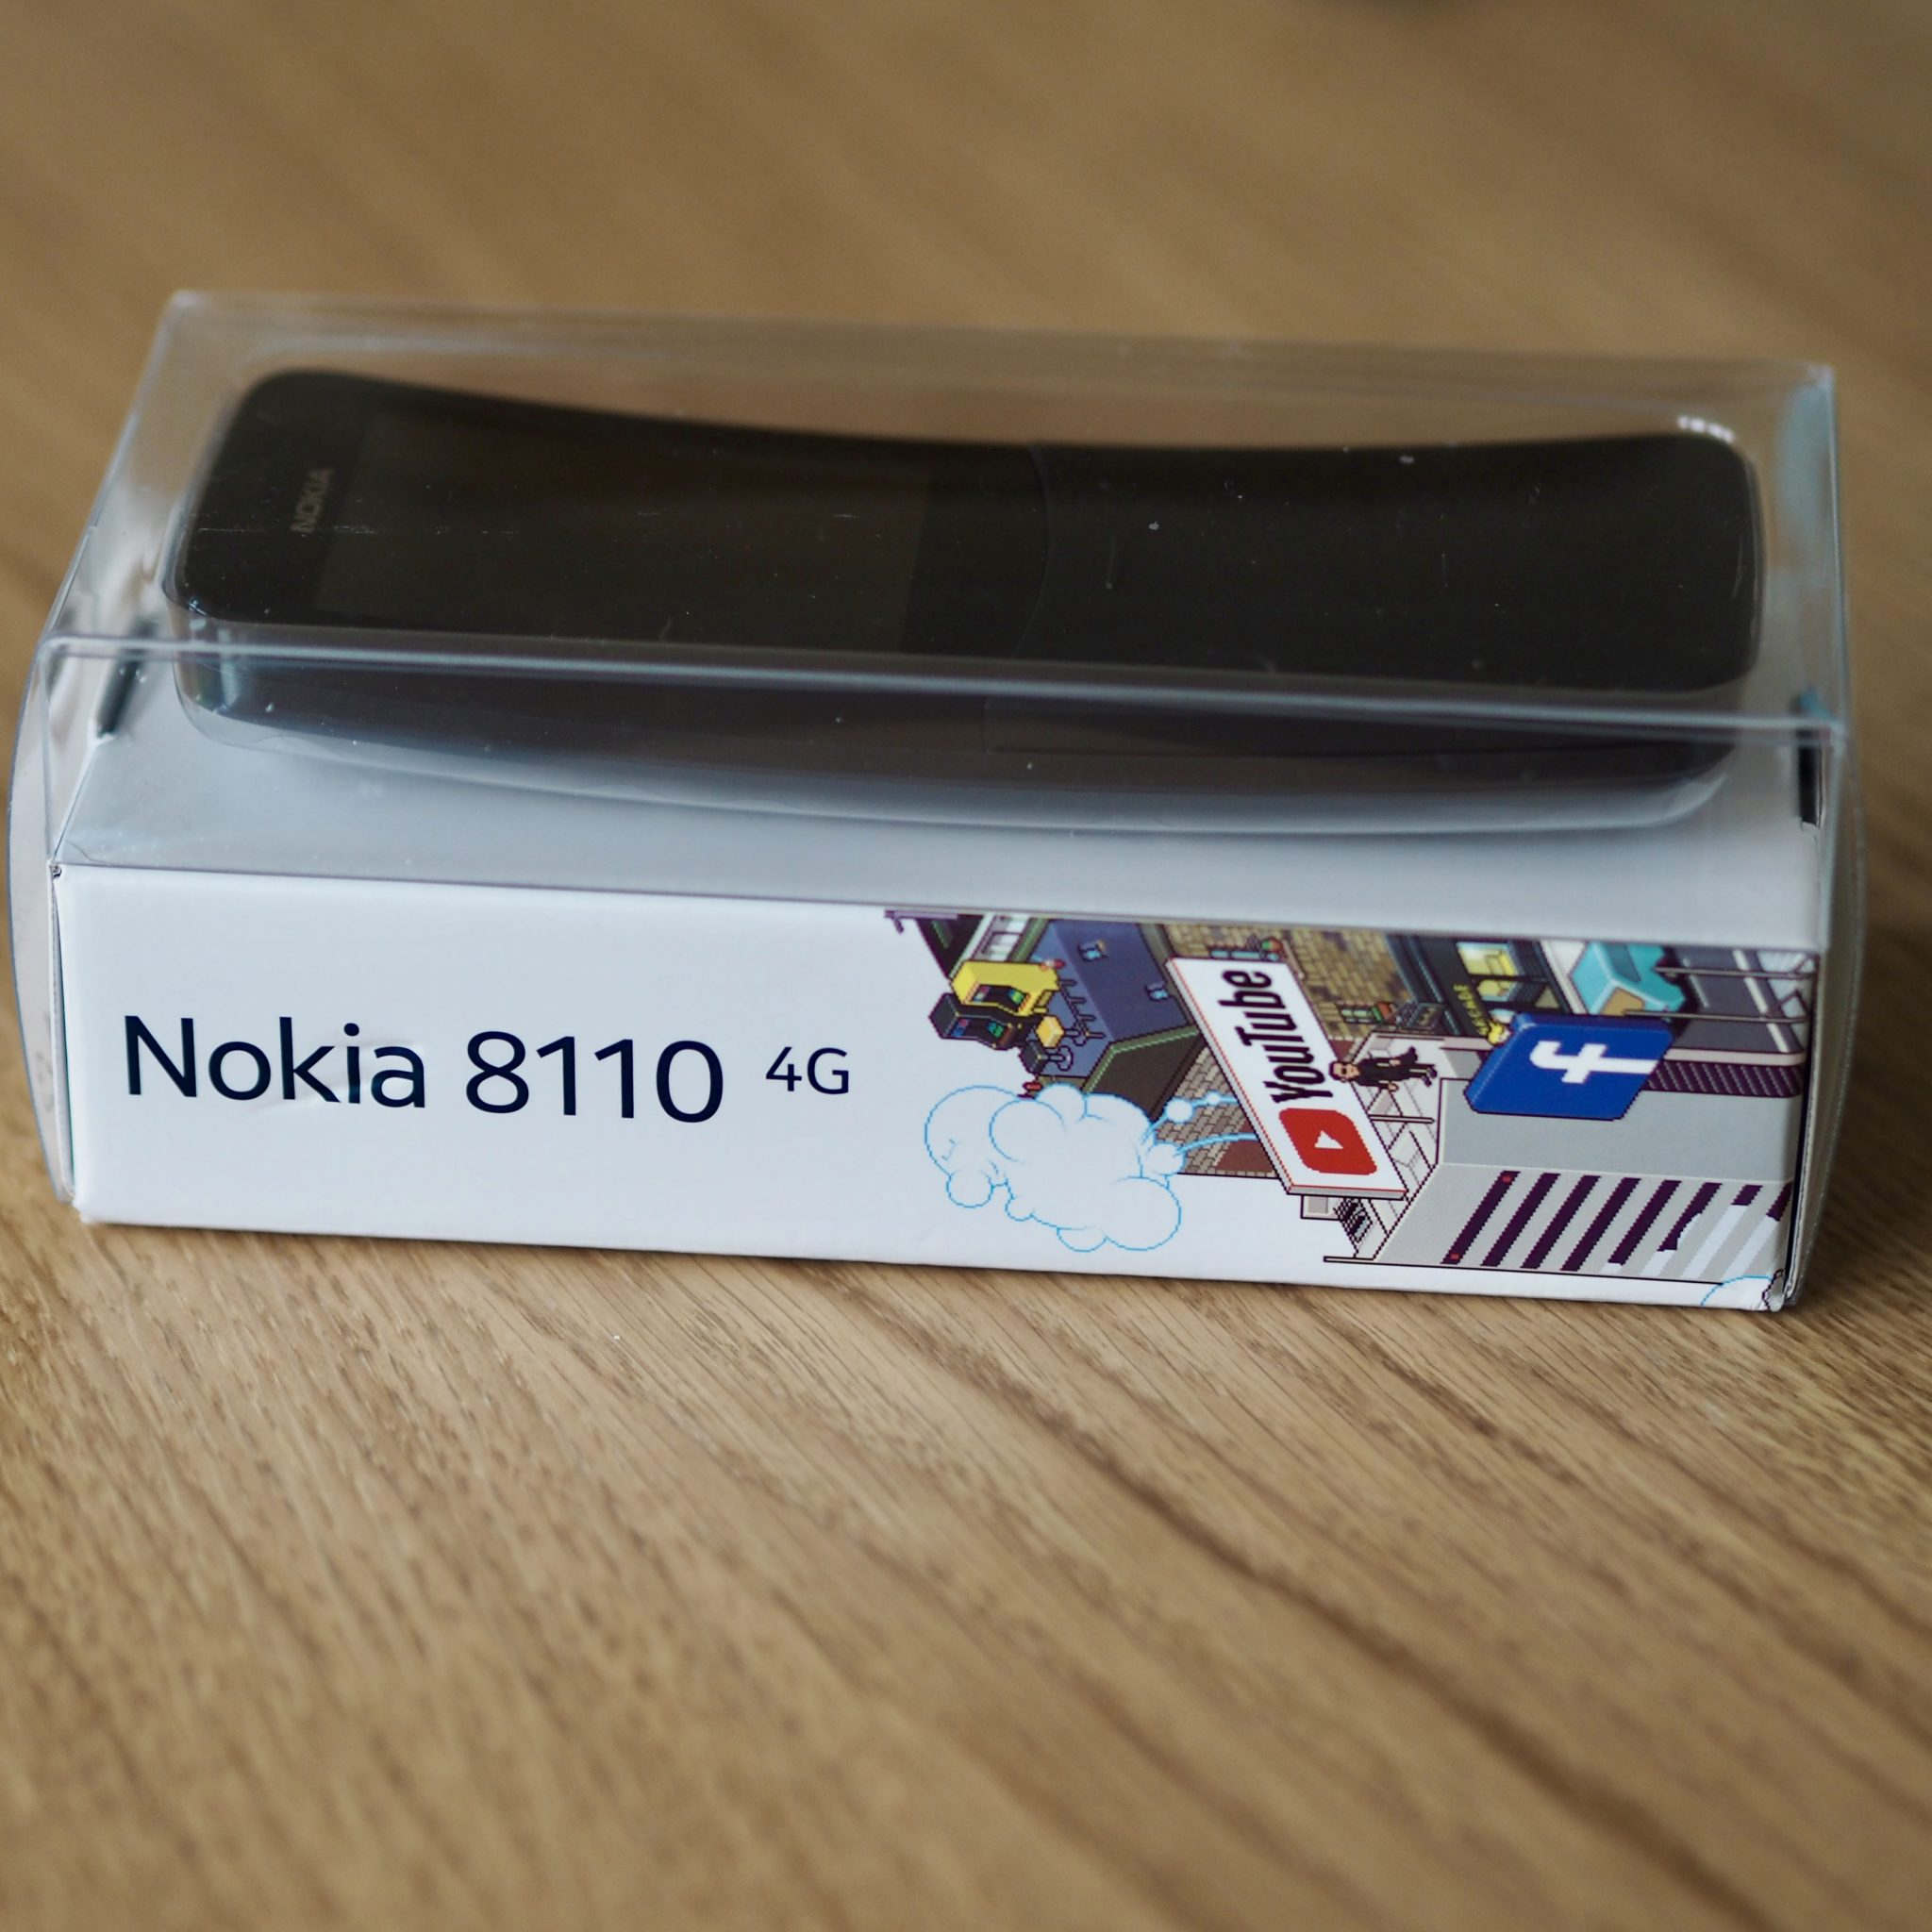 Guess Who's Back? Nokia 8110 4G